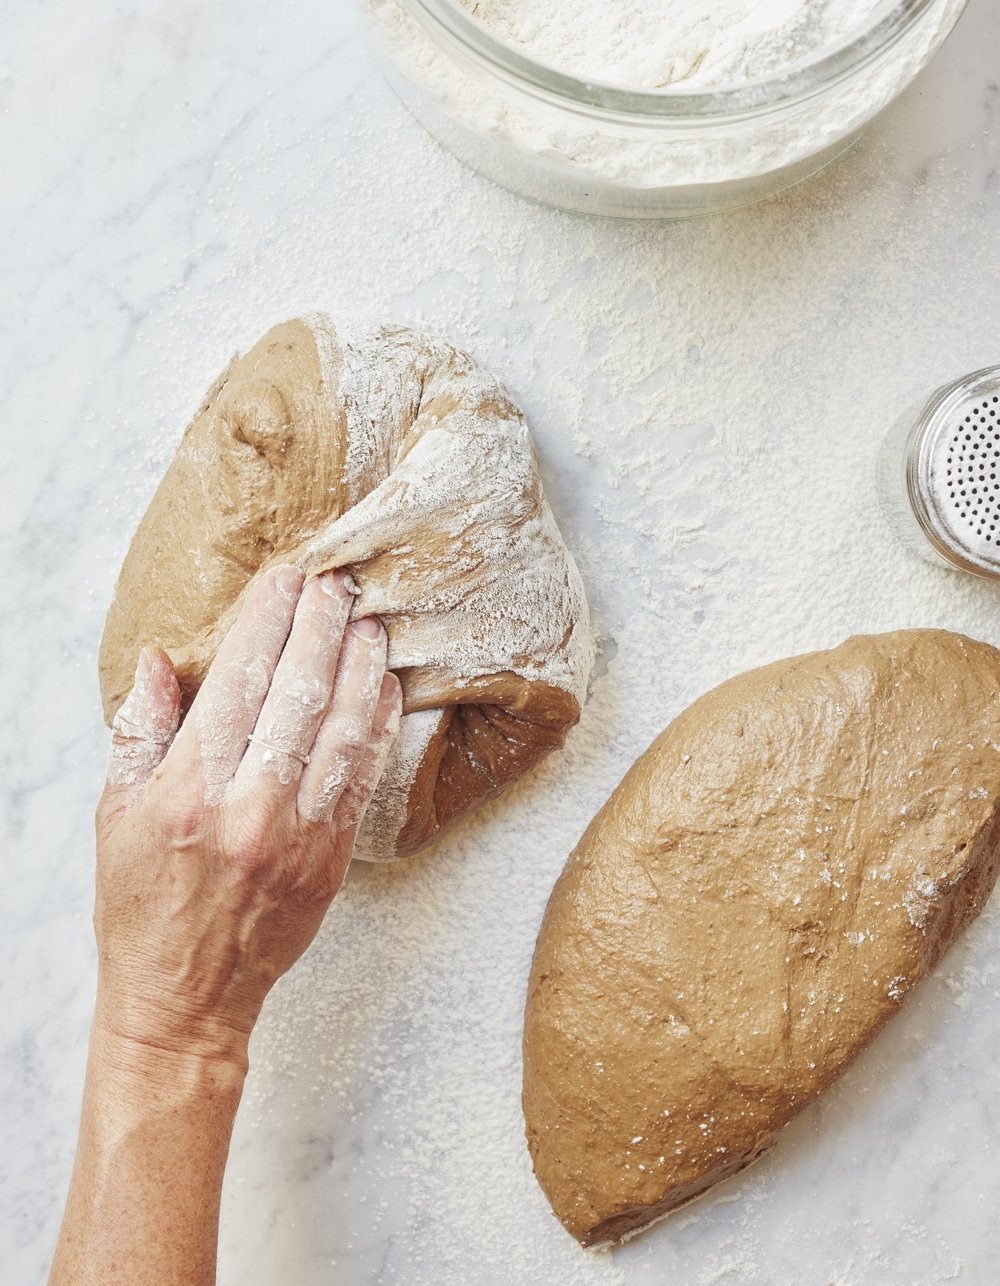 Black Bread being shaped into boules, a recipe from soon to be released Toast & Jam. Photograph by Ngoc Minh Ngo